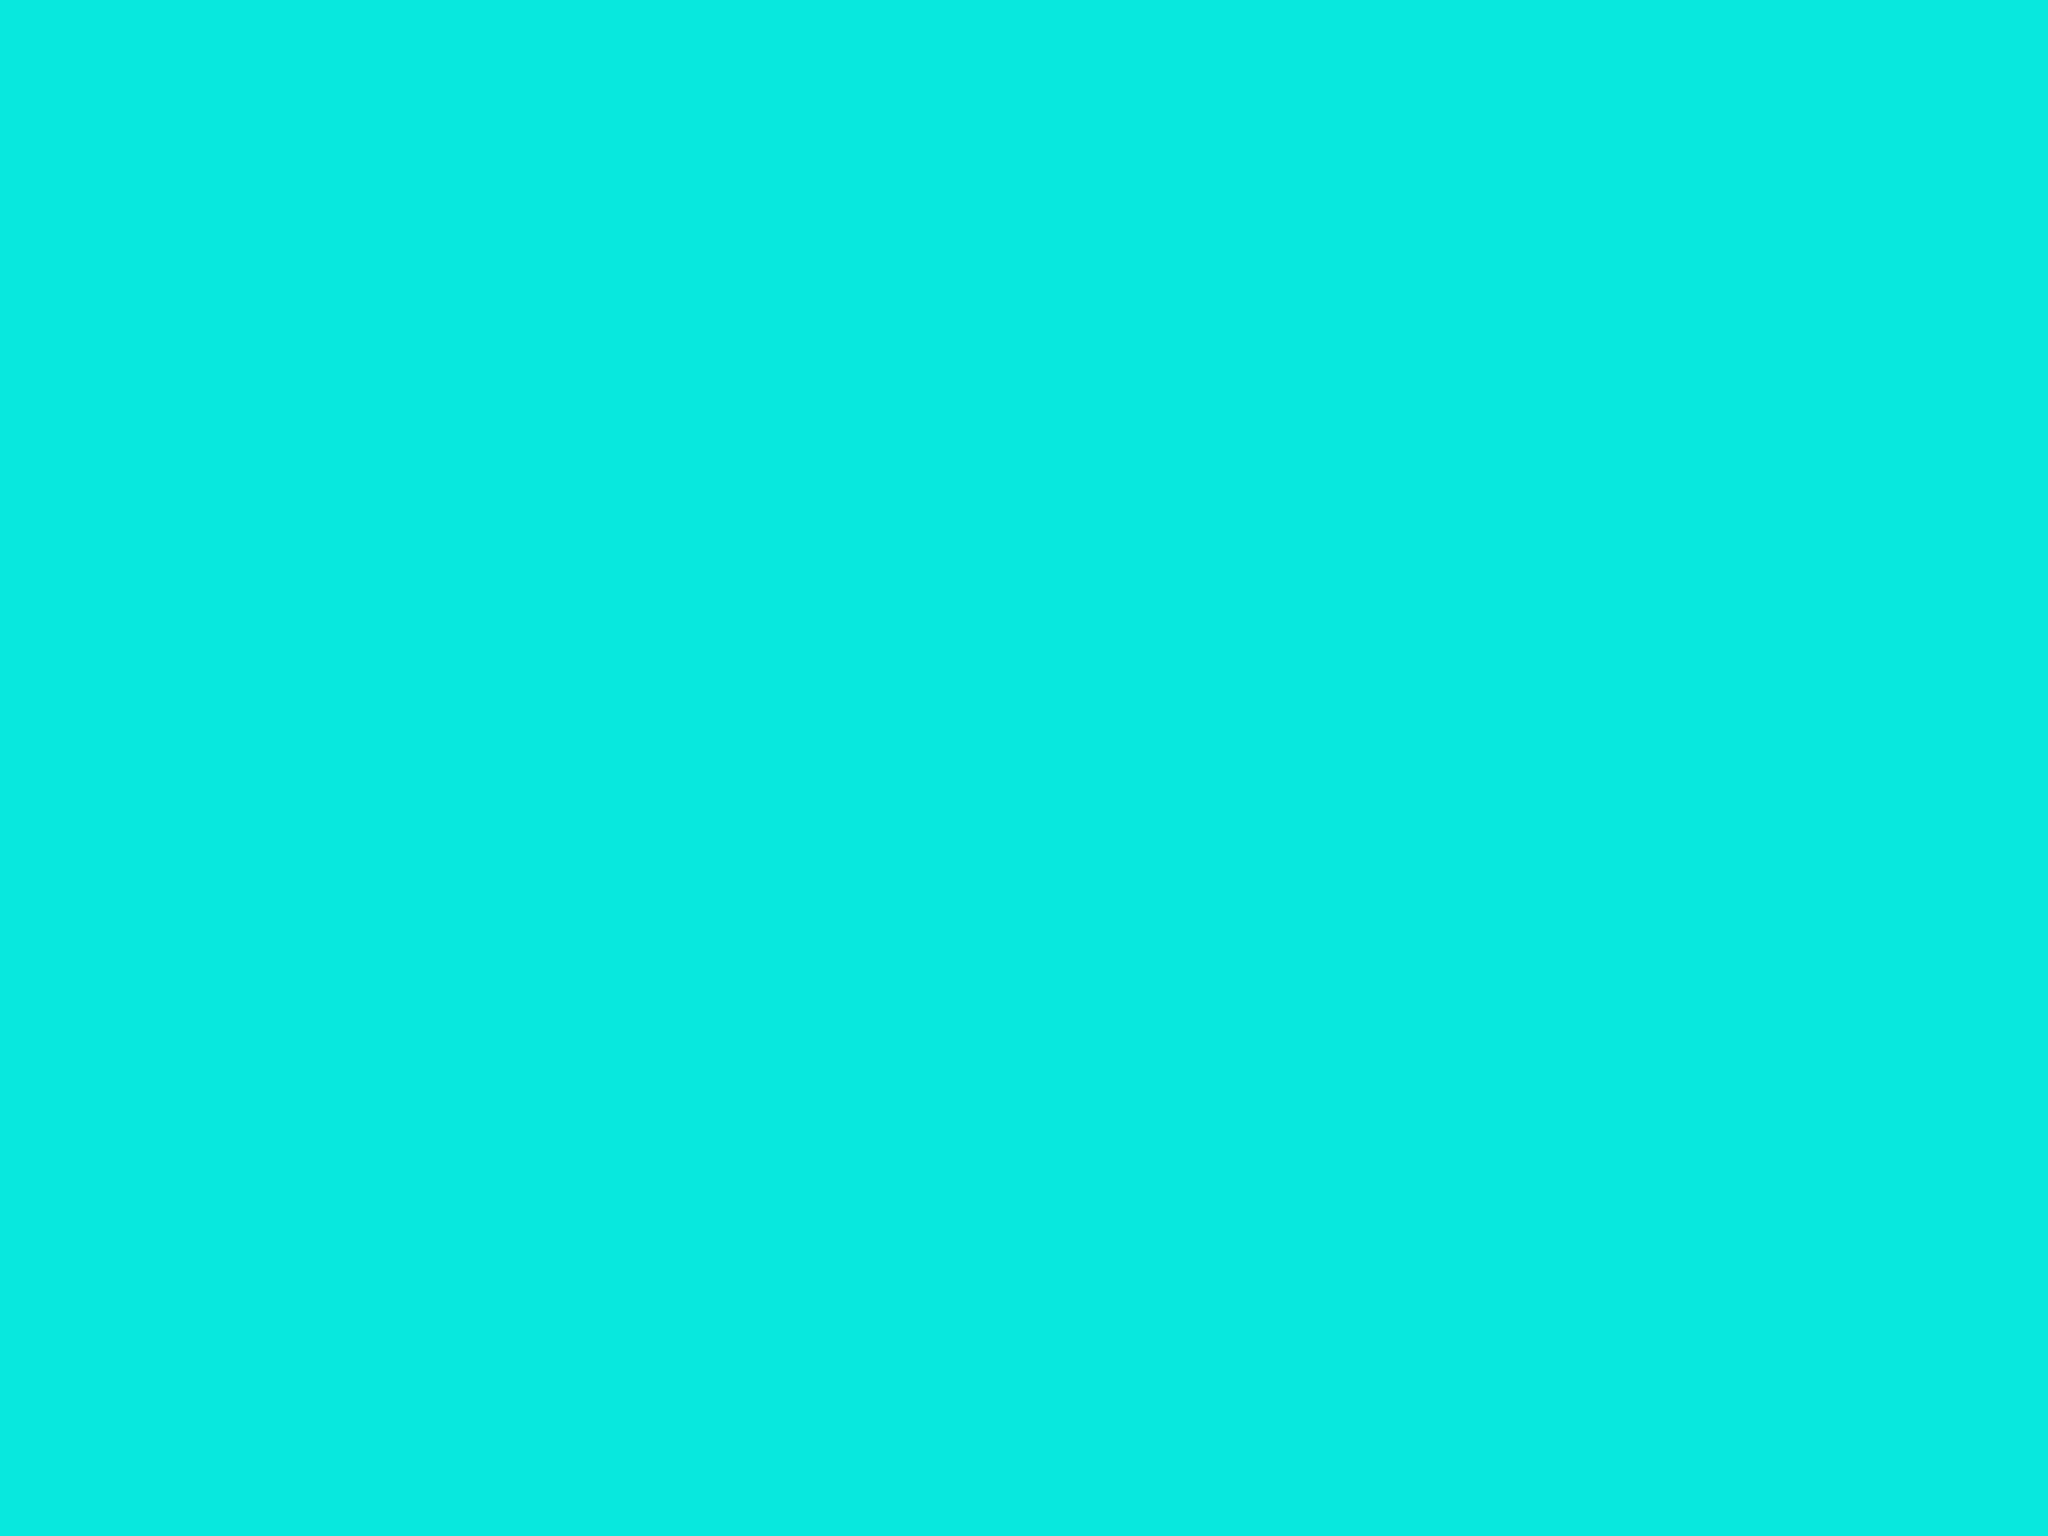 2048x1536 Bright Turquoise Solid Color Background